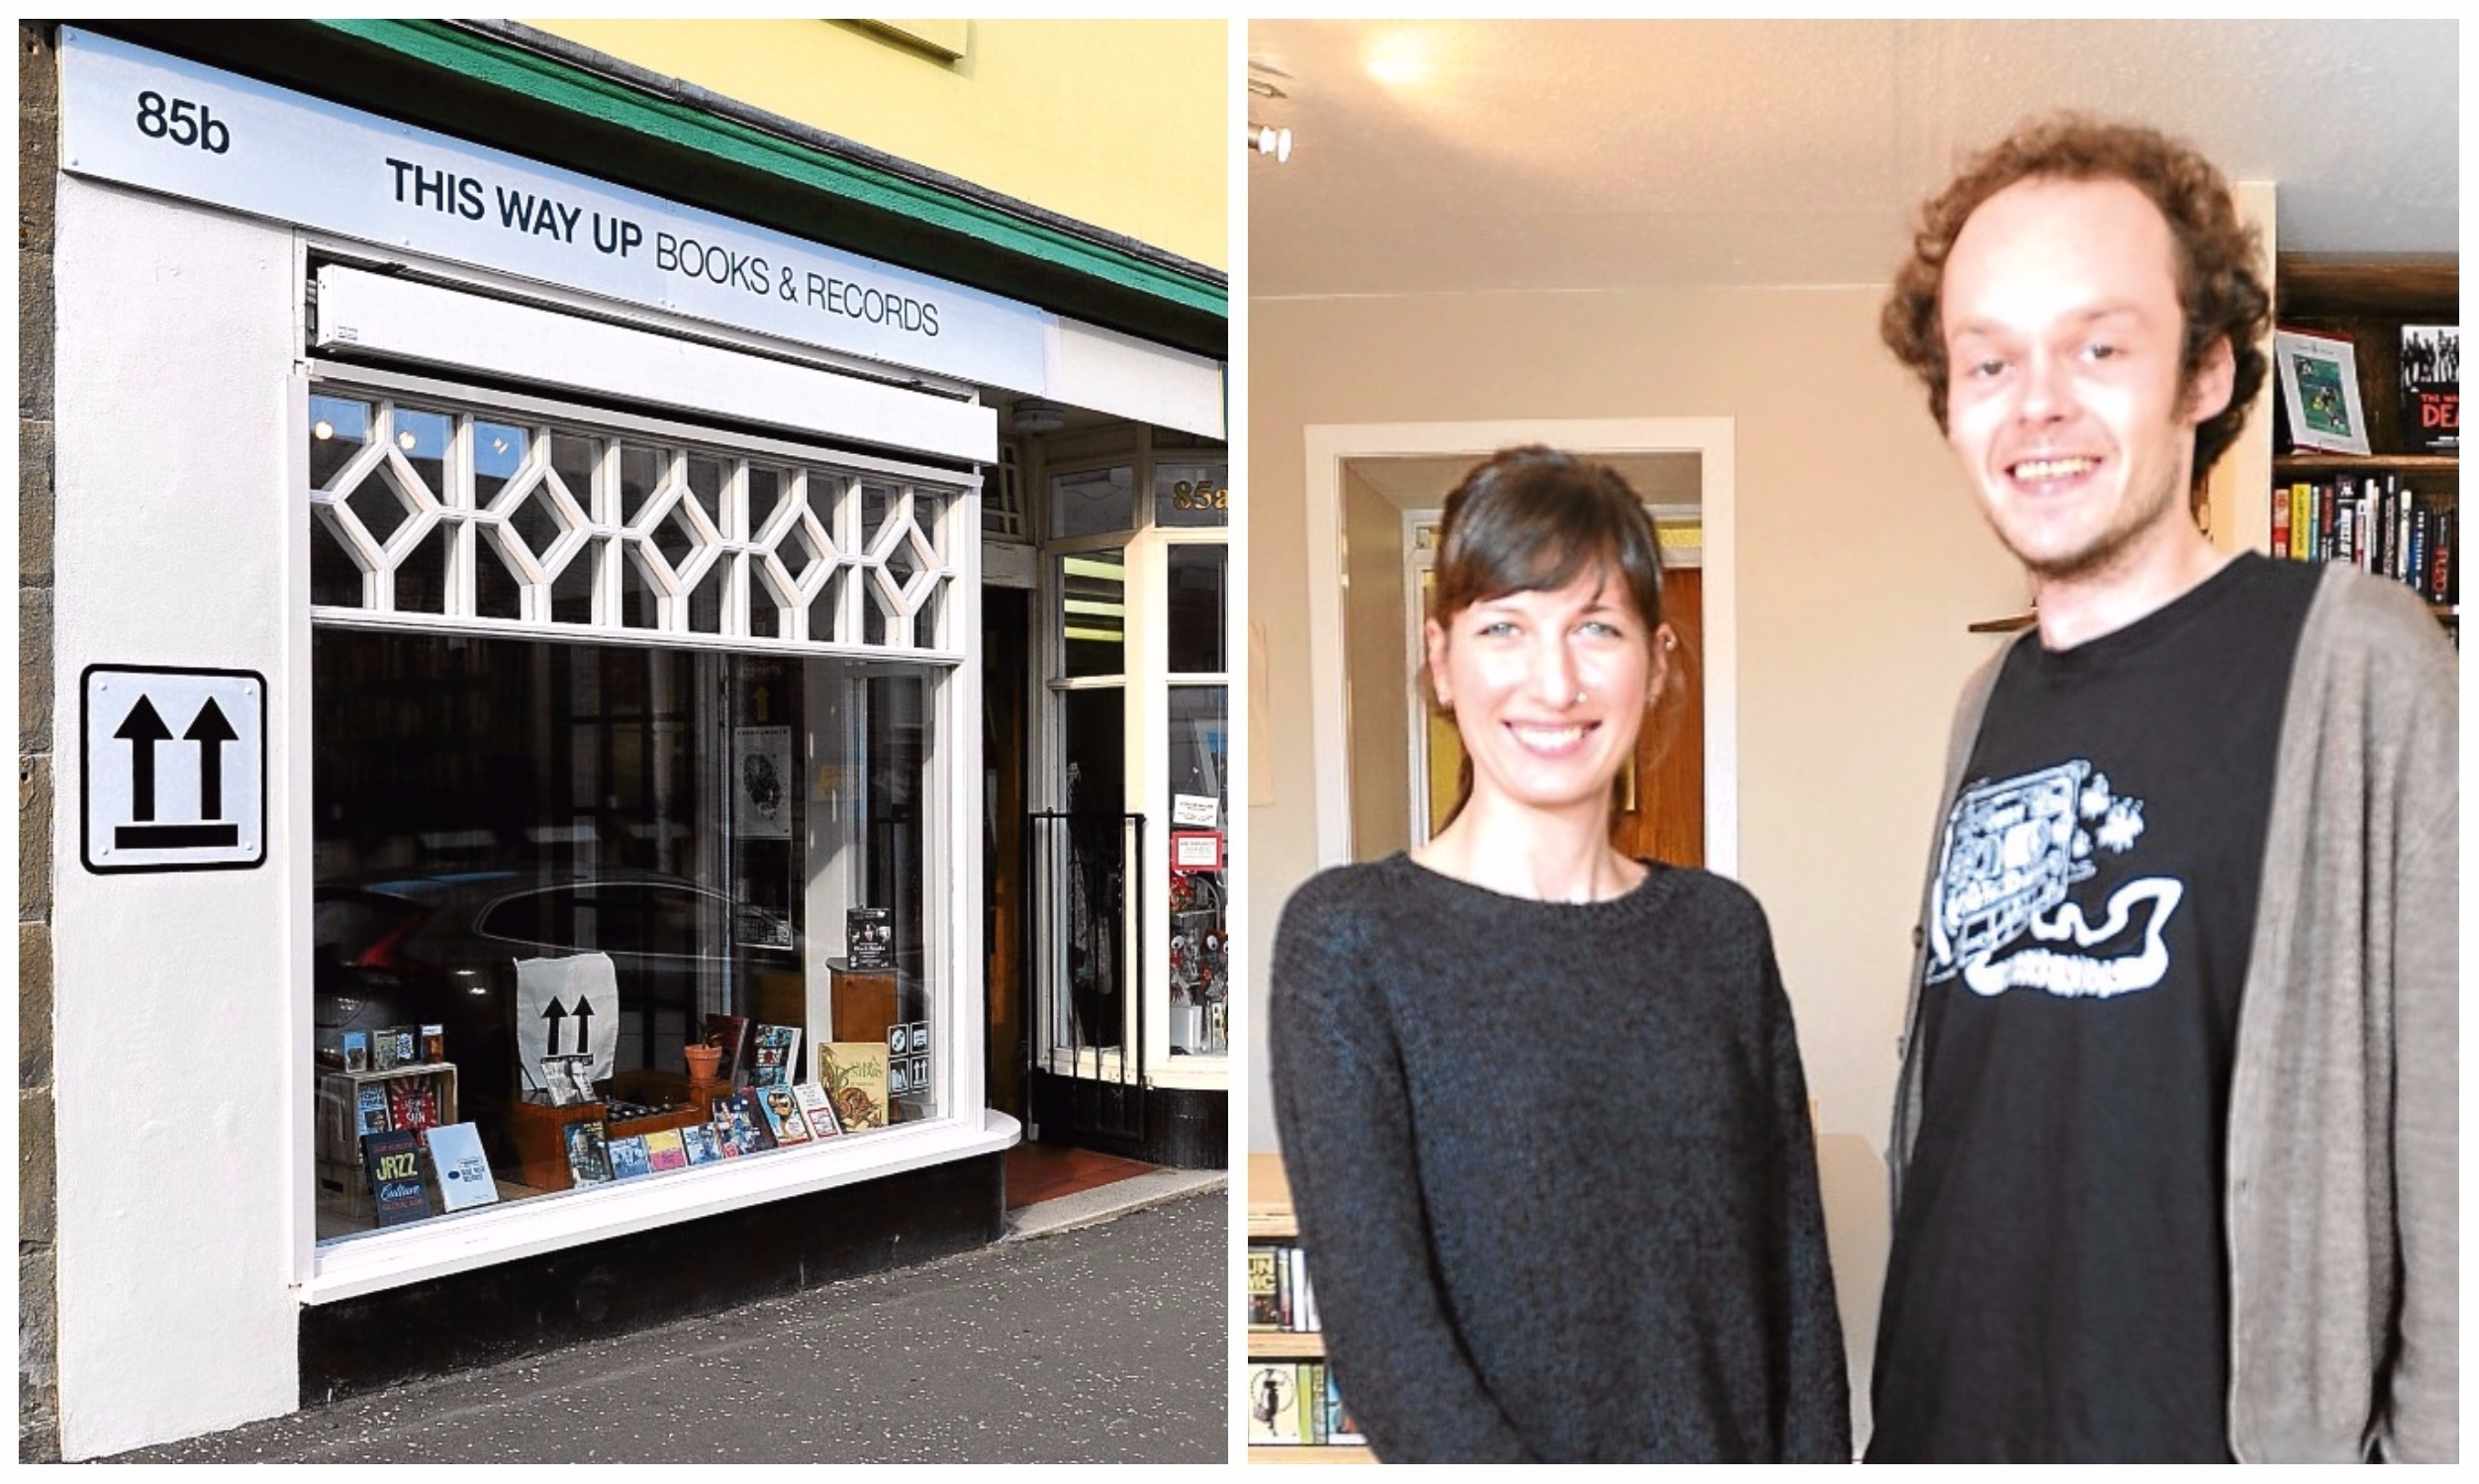 Angelina and Matt are pictured within their shop This Way Up (left).